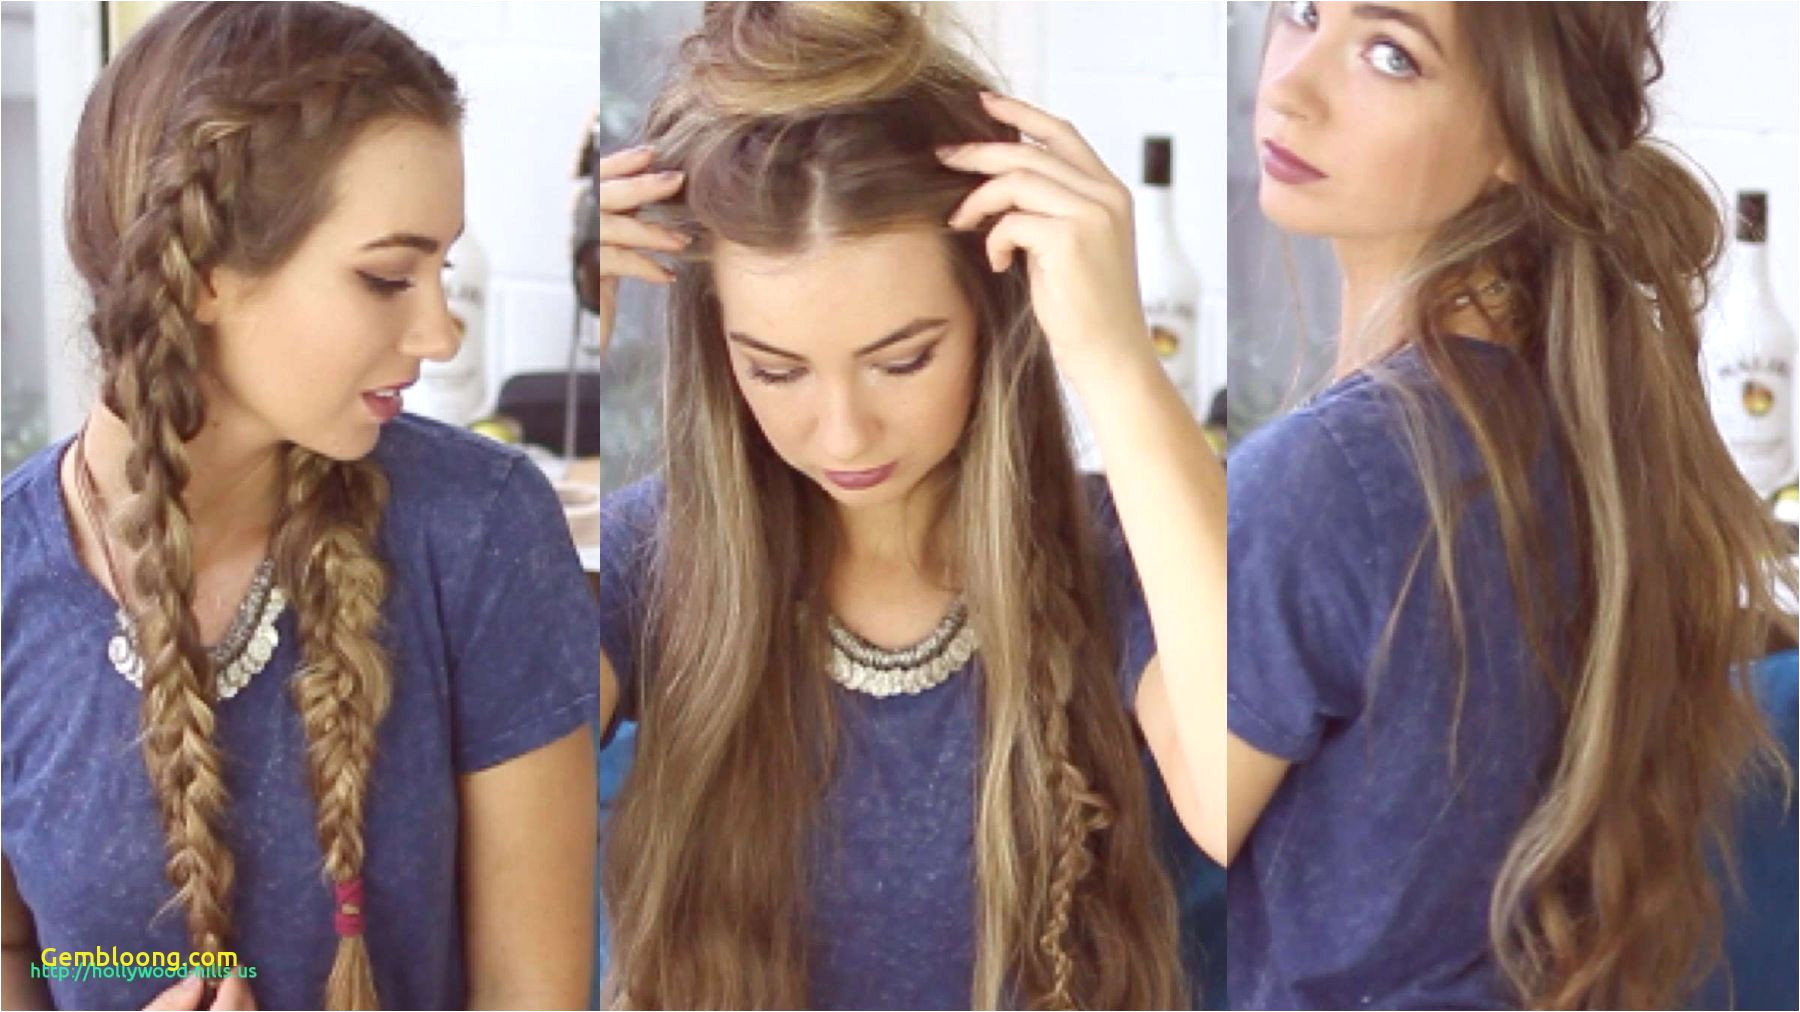 Easy Hairstyles for Easter ☆ 29 Up to Date Hairstyles for Short Hair to Make You Look Hot